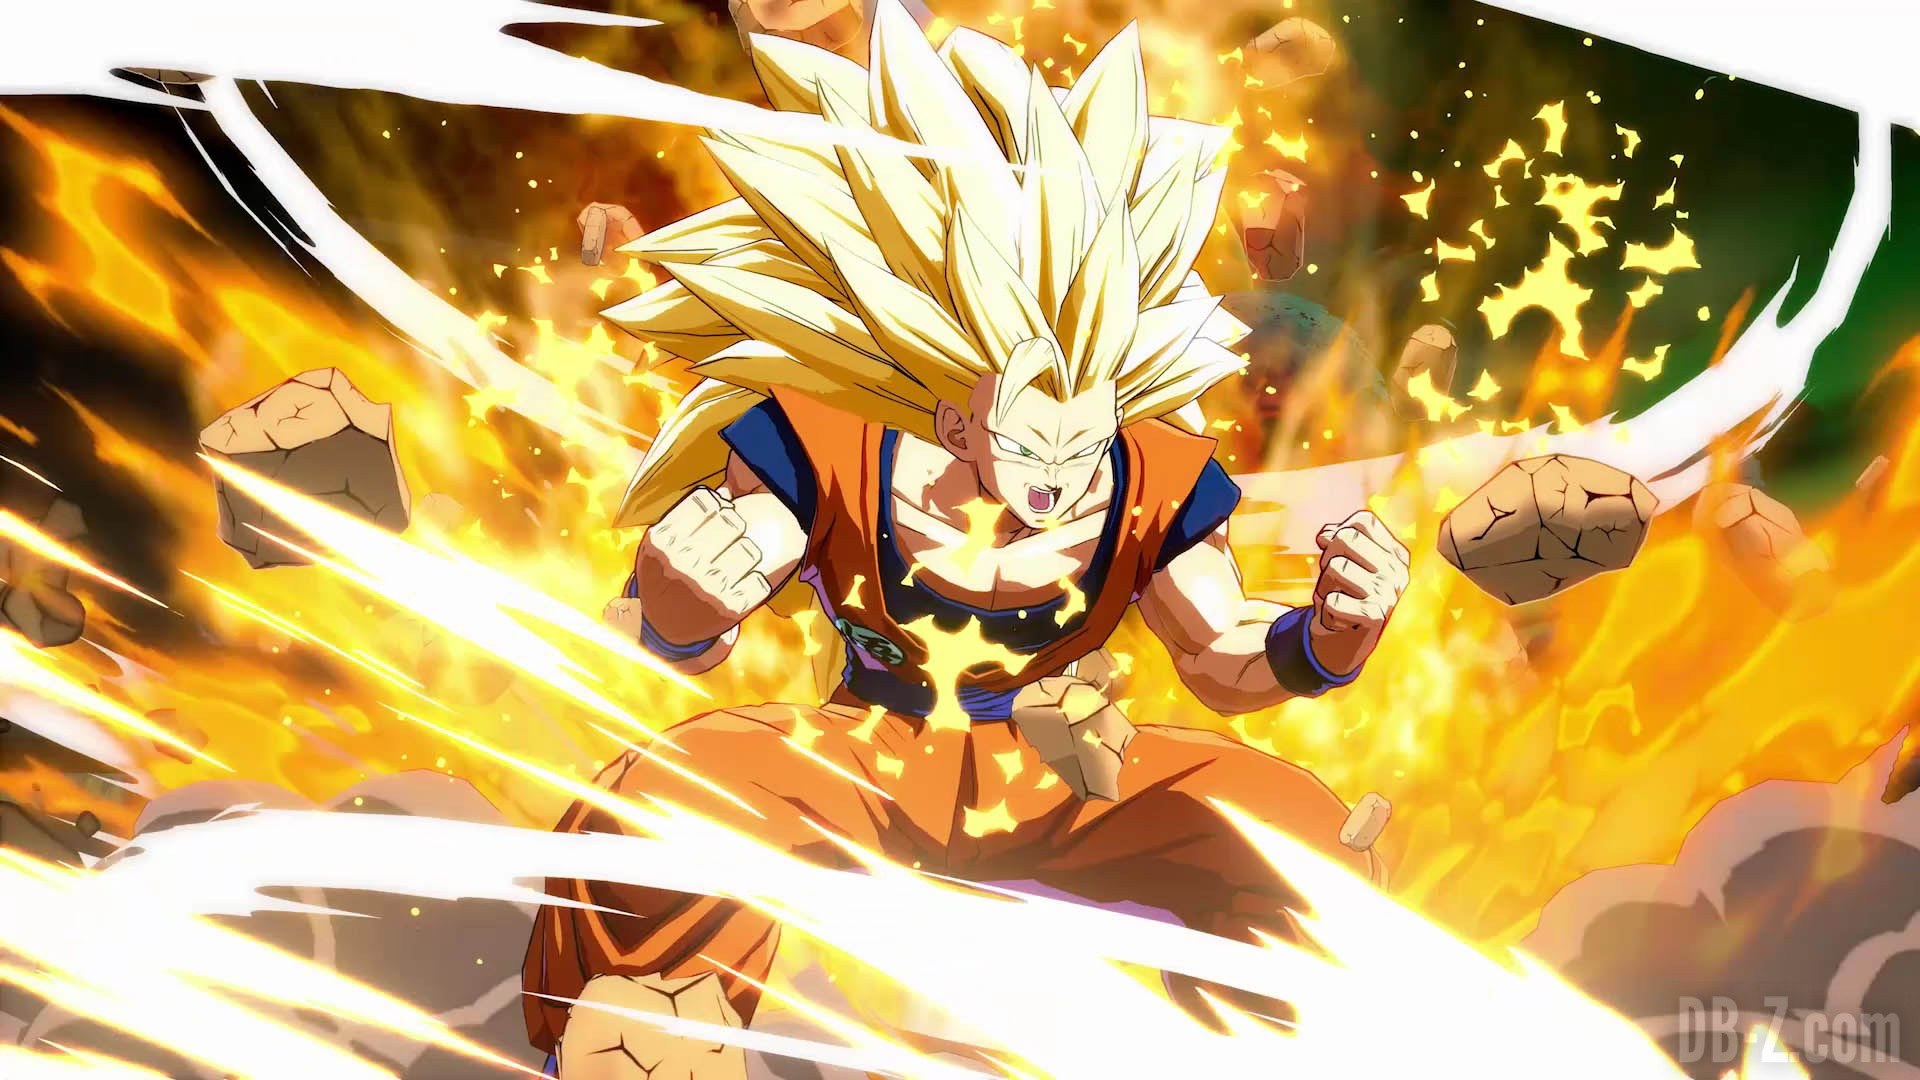 Dragon Ball Fighterz Hd Wallpaper Background Image 1920x1080